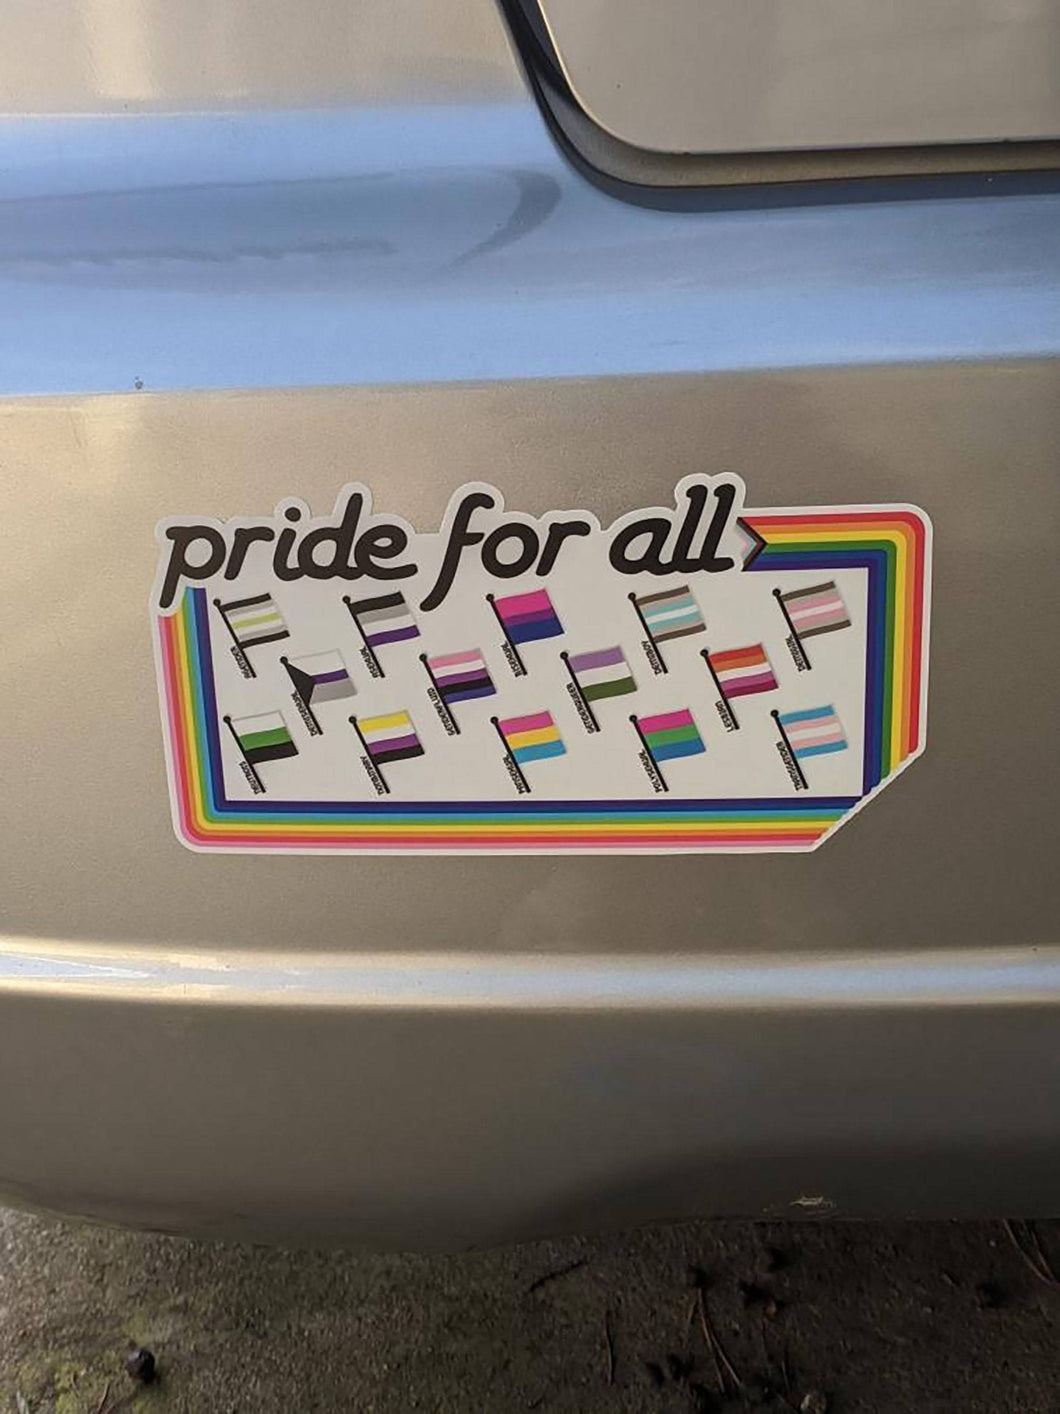 Pride for All bumper sticker